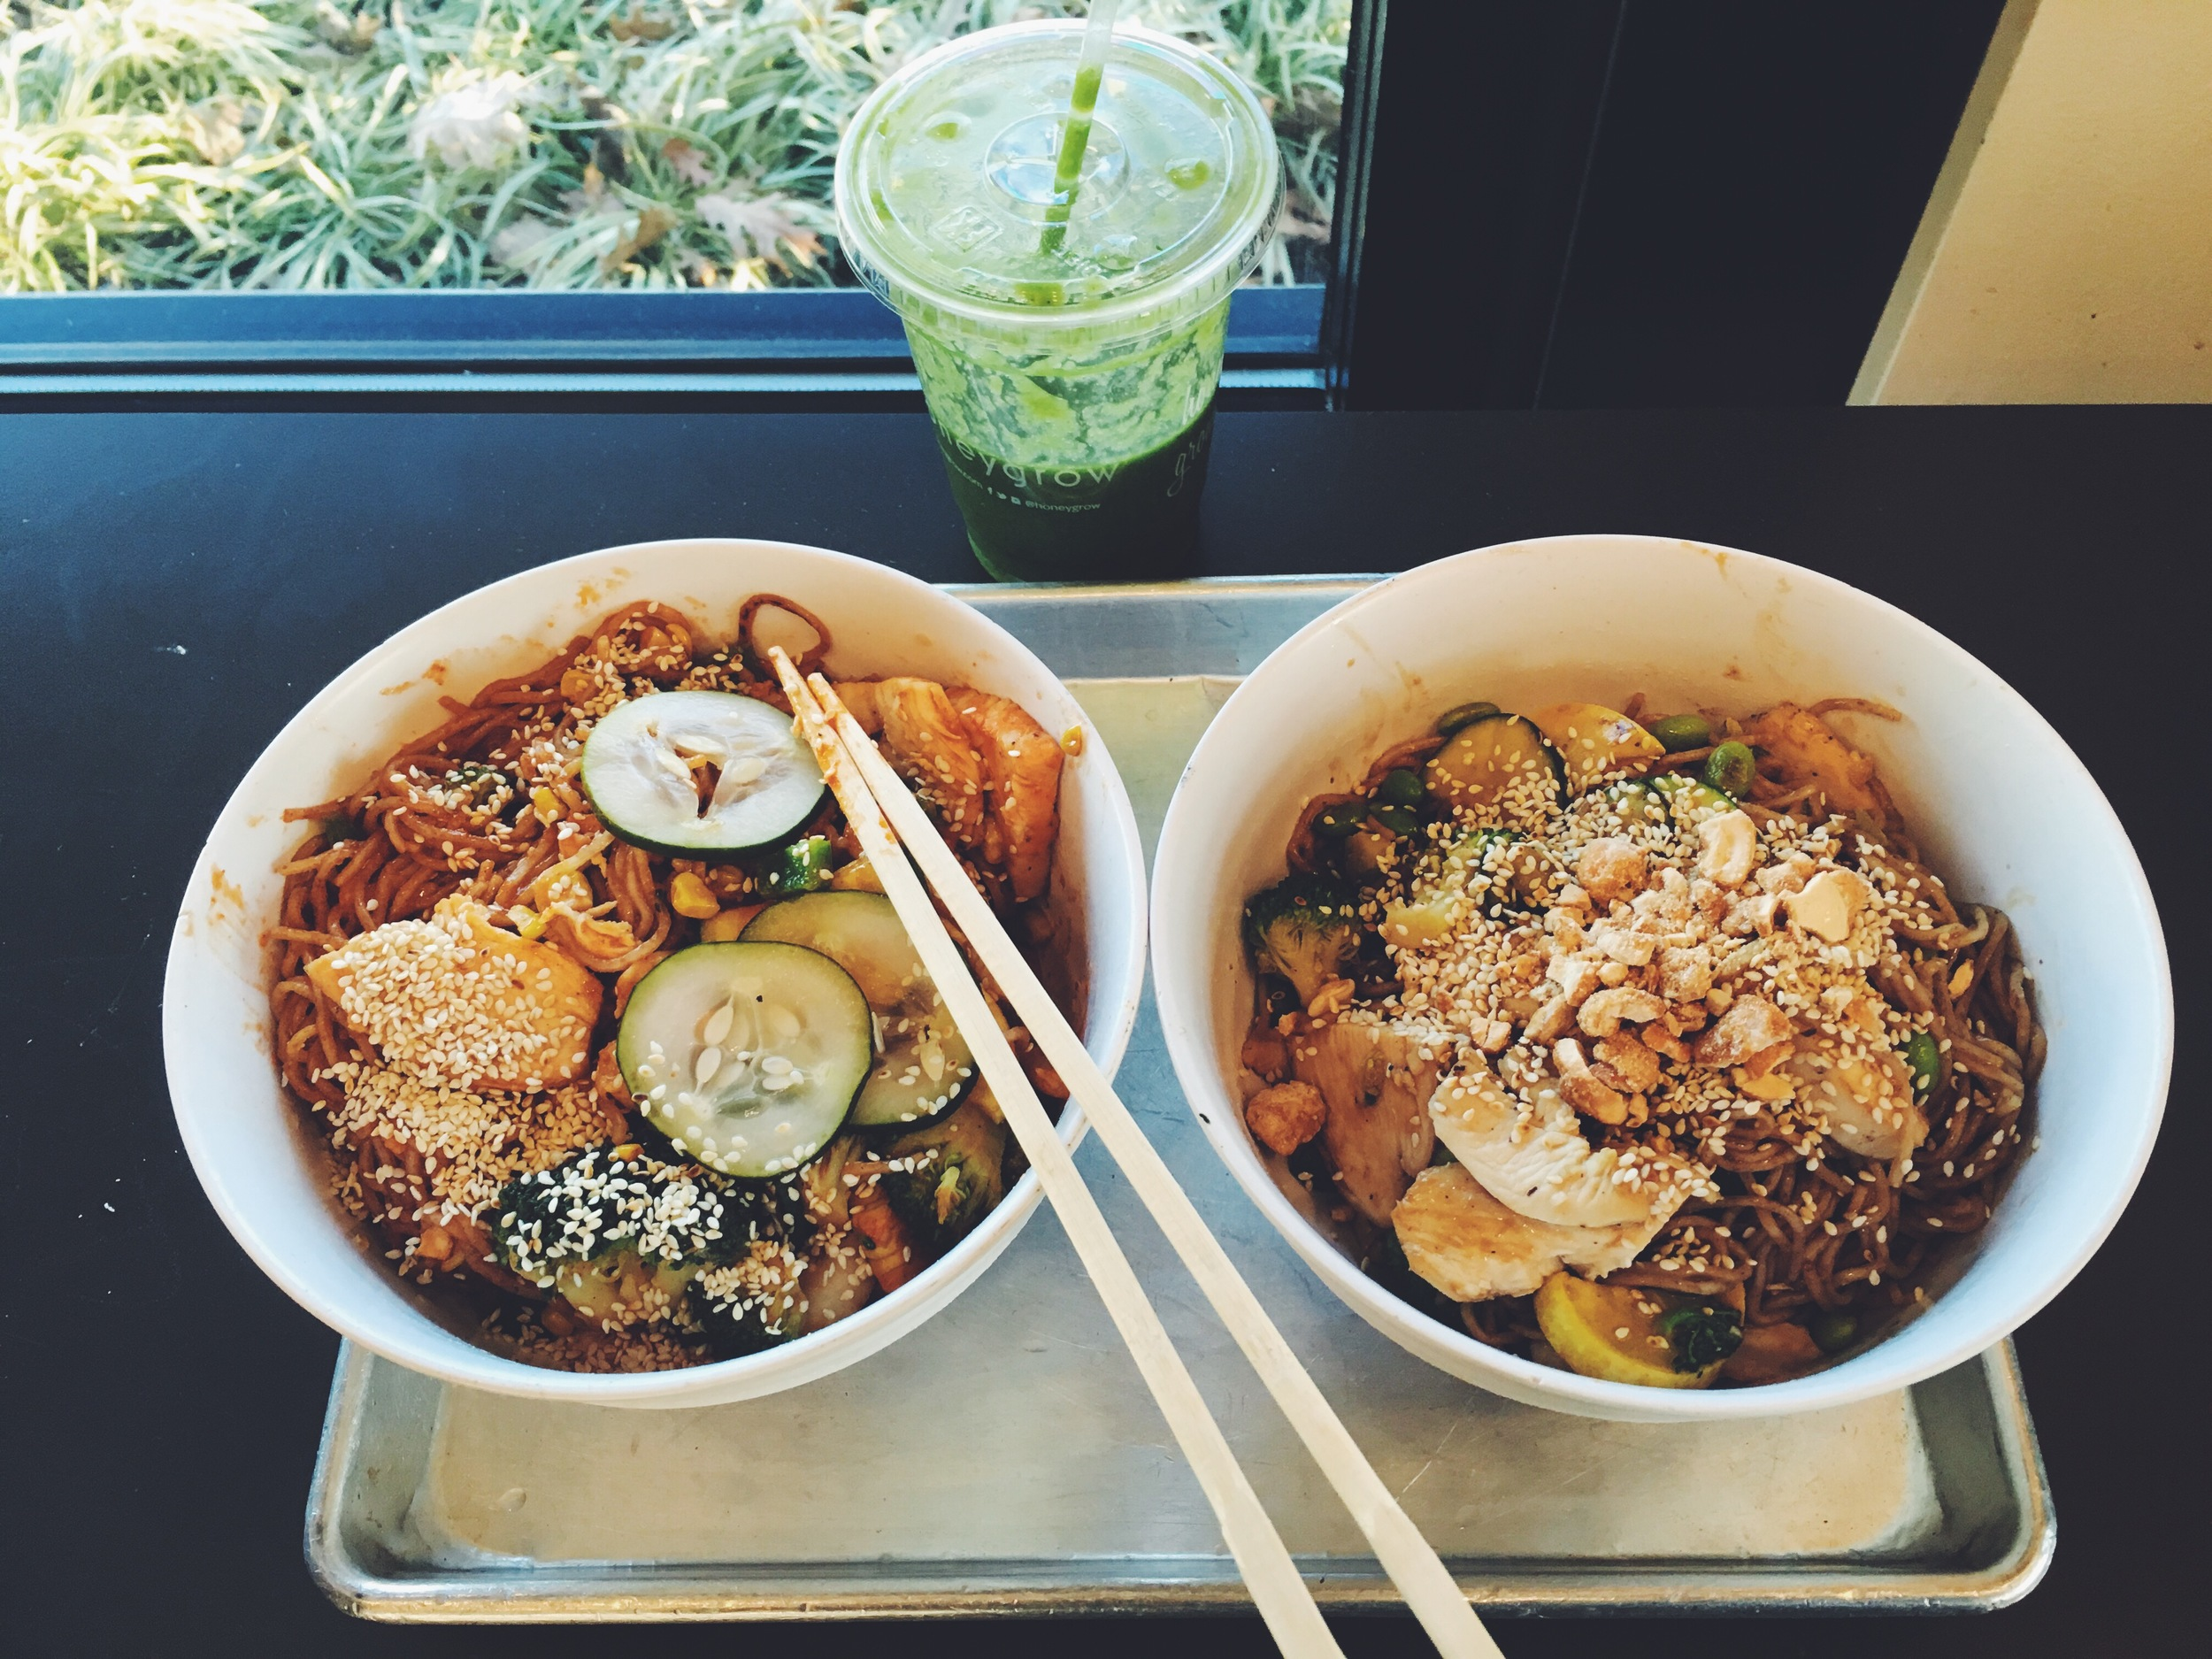 "My obsession began the minute I tried this kaleatta green smoothie, and personal stir fry from Honeygrow. I have never been a huge chipotle or any other ""better"" fast food place fan. So when I heard about Honeygrow I thought it was just another one of these places. I was so wrong! I love everything from the ingredients to the people who service you. (at least at my local Honeygrow) The order system is so easy and allows you to pick exactly what you want, personal style or one they have created. My boyfriend Zach and I love to cook all sorts of different foods, but Honeygrow is easily our new favorite ""fast"" food lunch spot!"